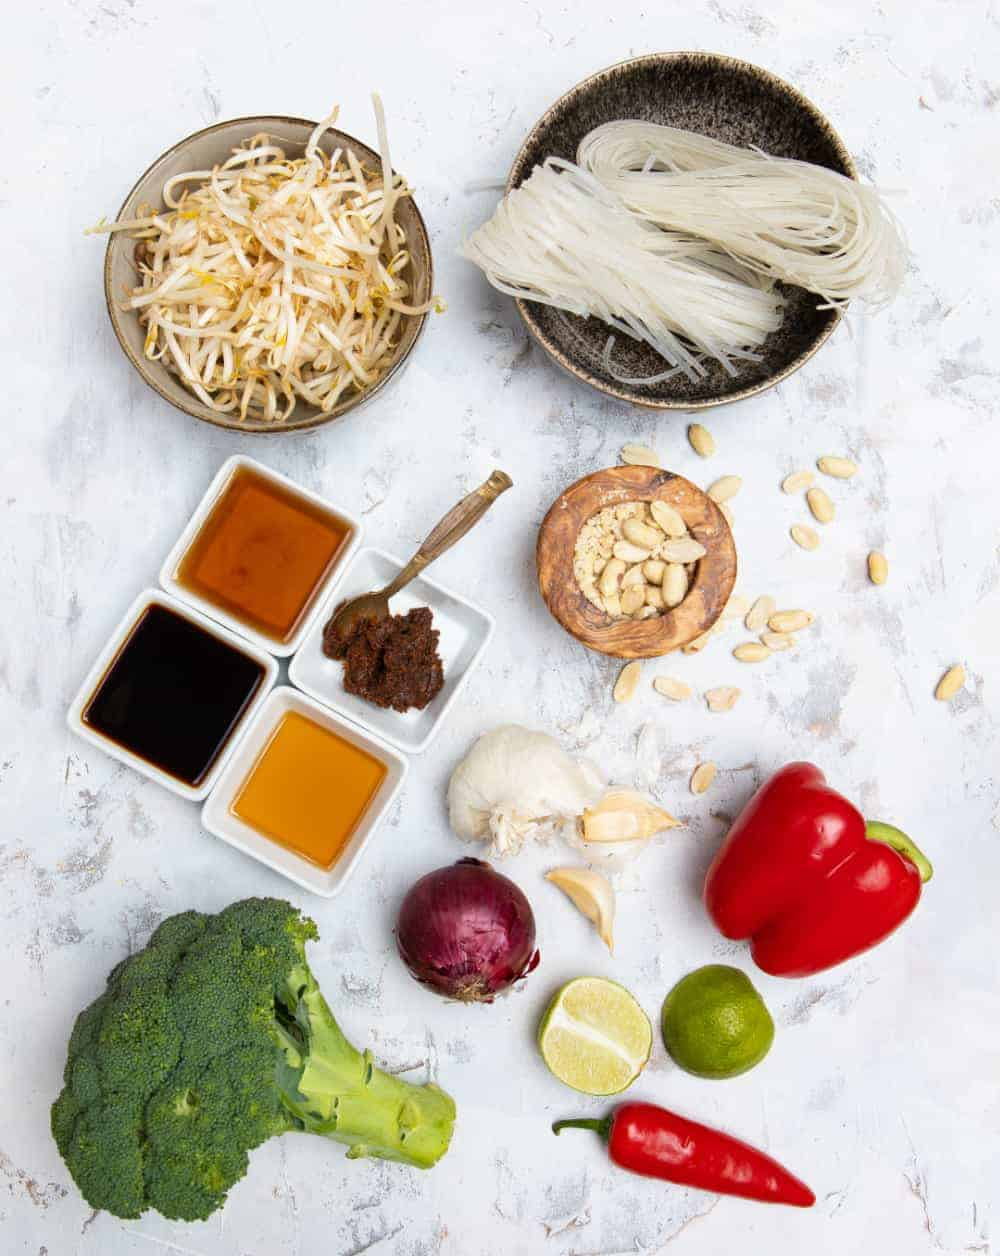 Vegan Pad Thai Ingredients